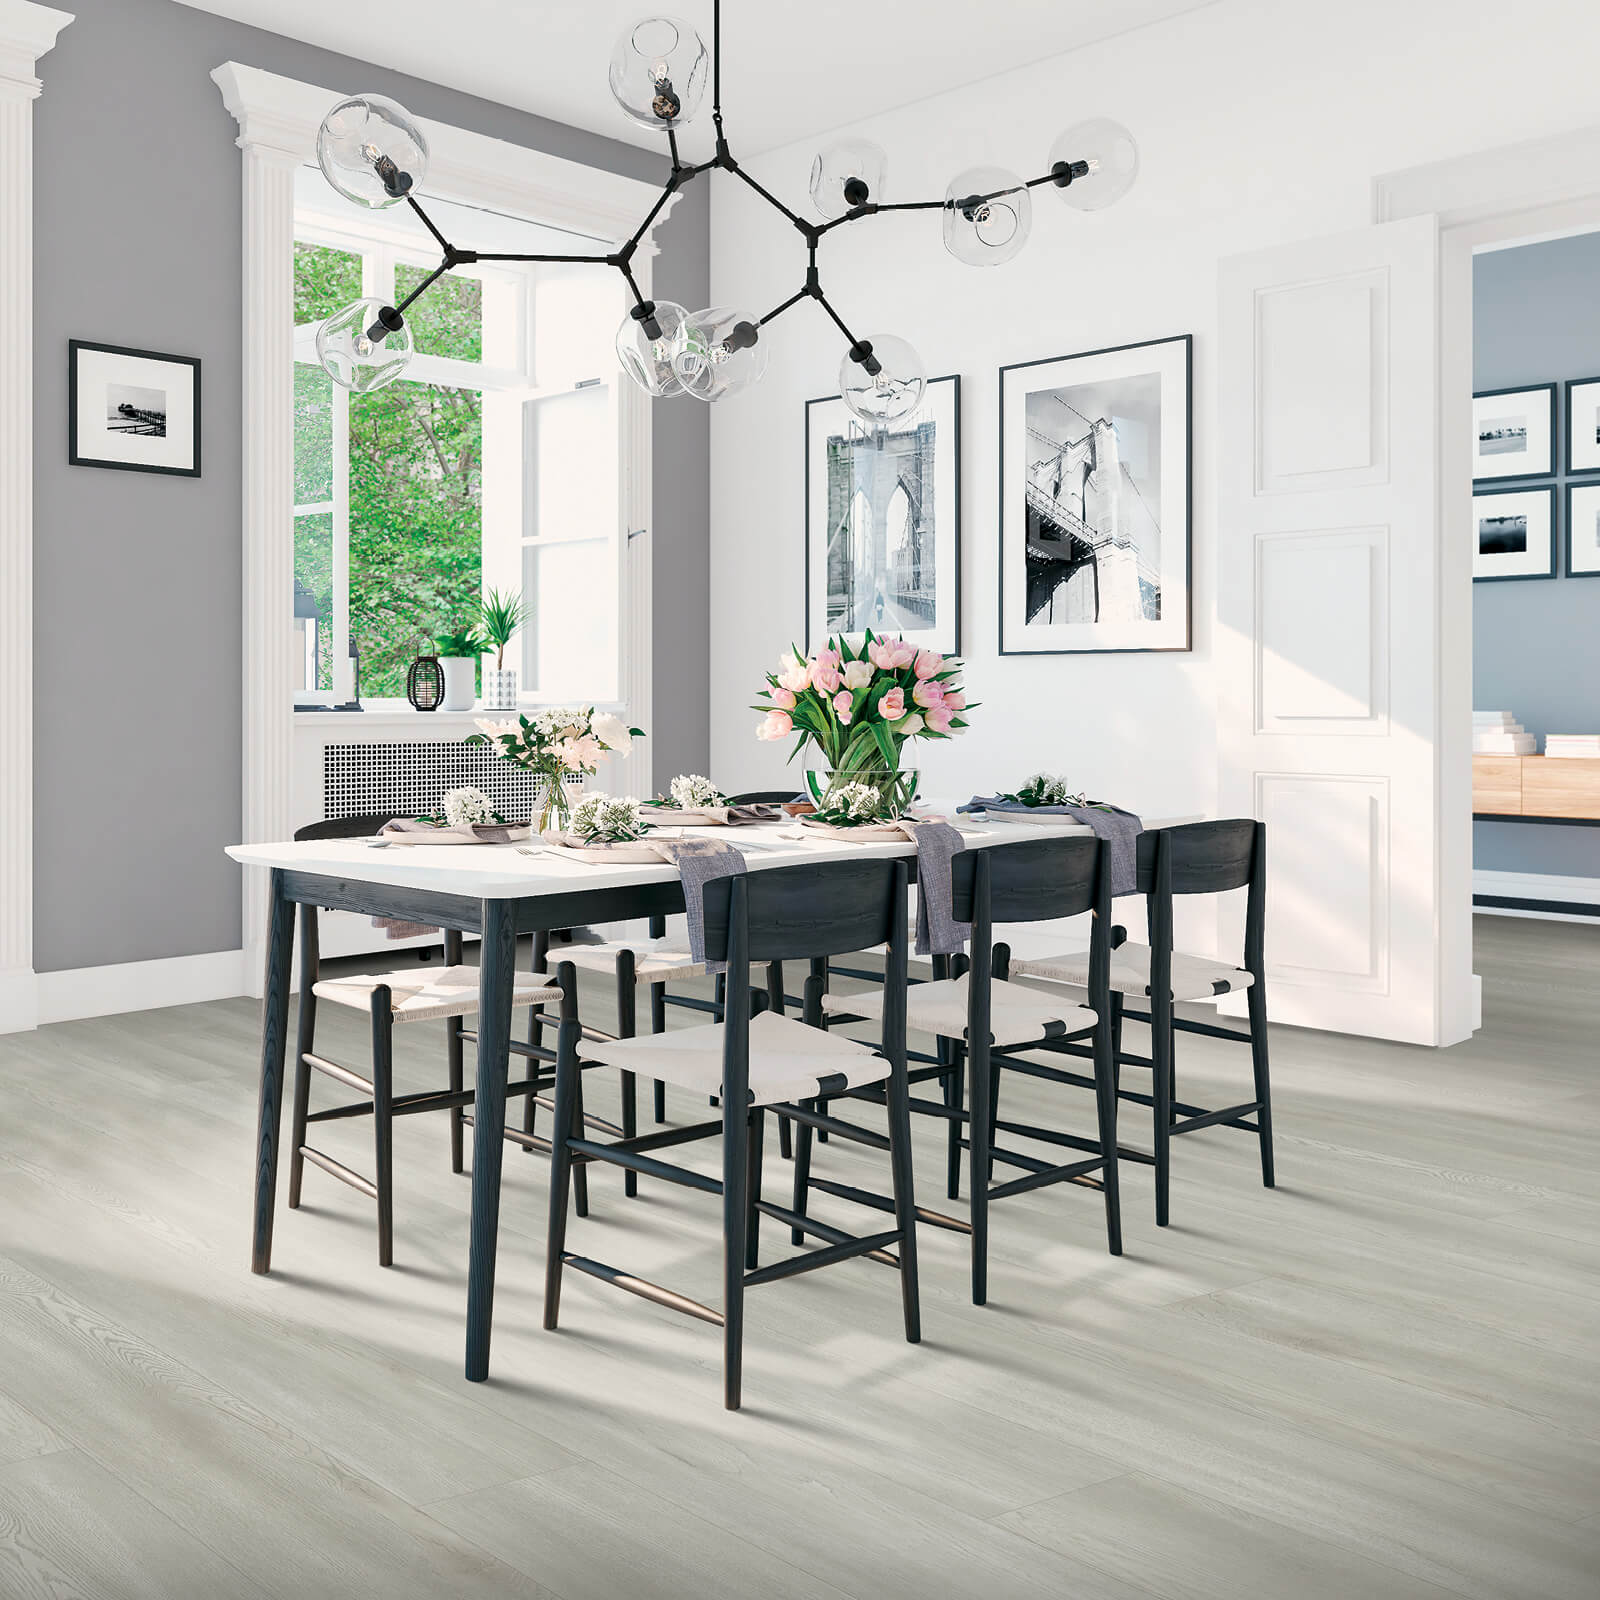 Dining Room Laminate Flooring | Wacky's Flooring